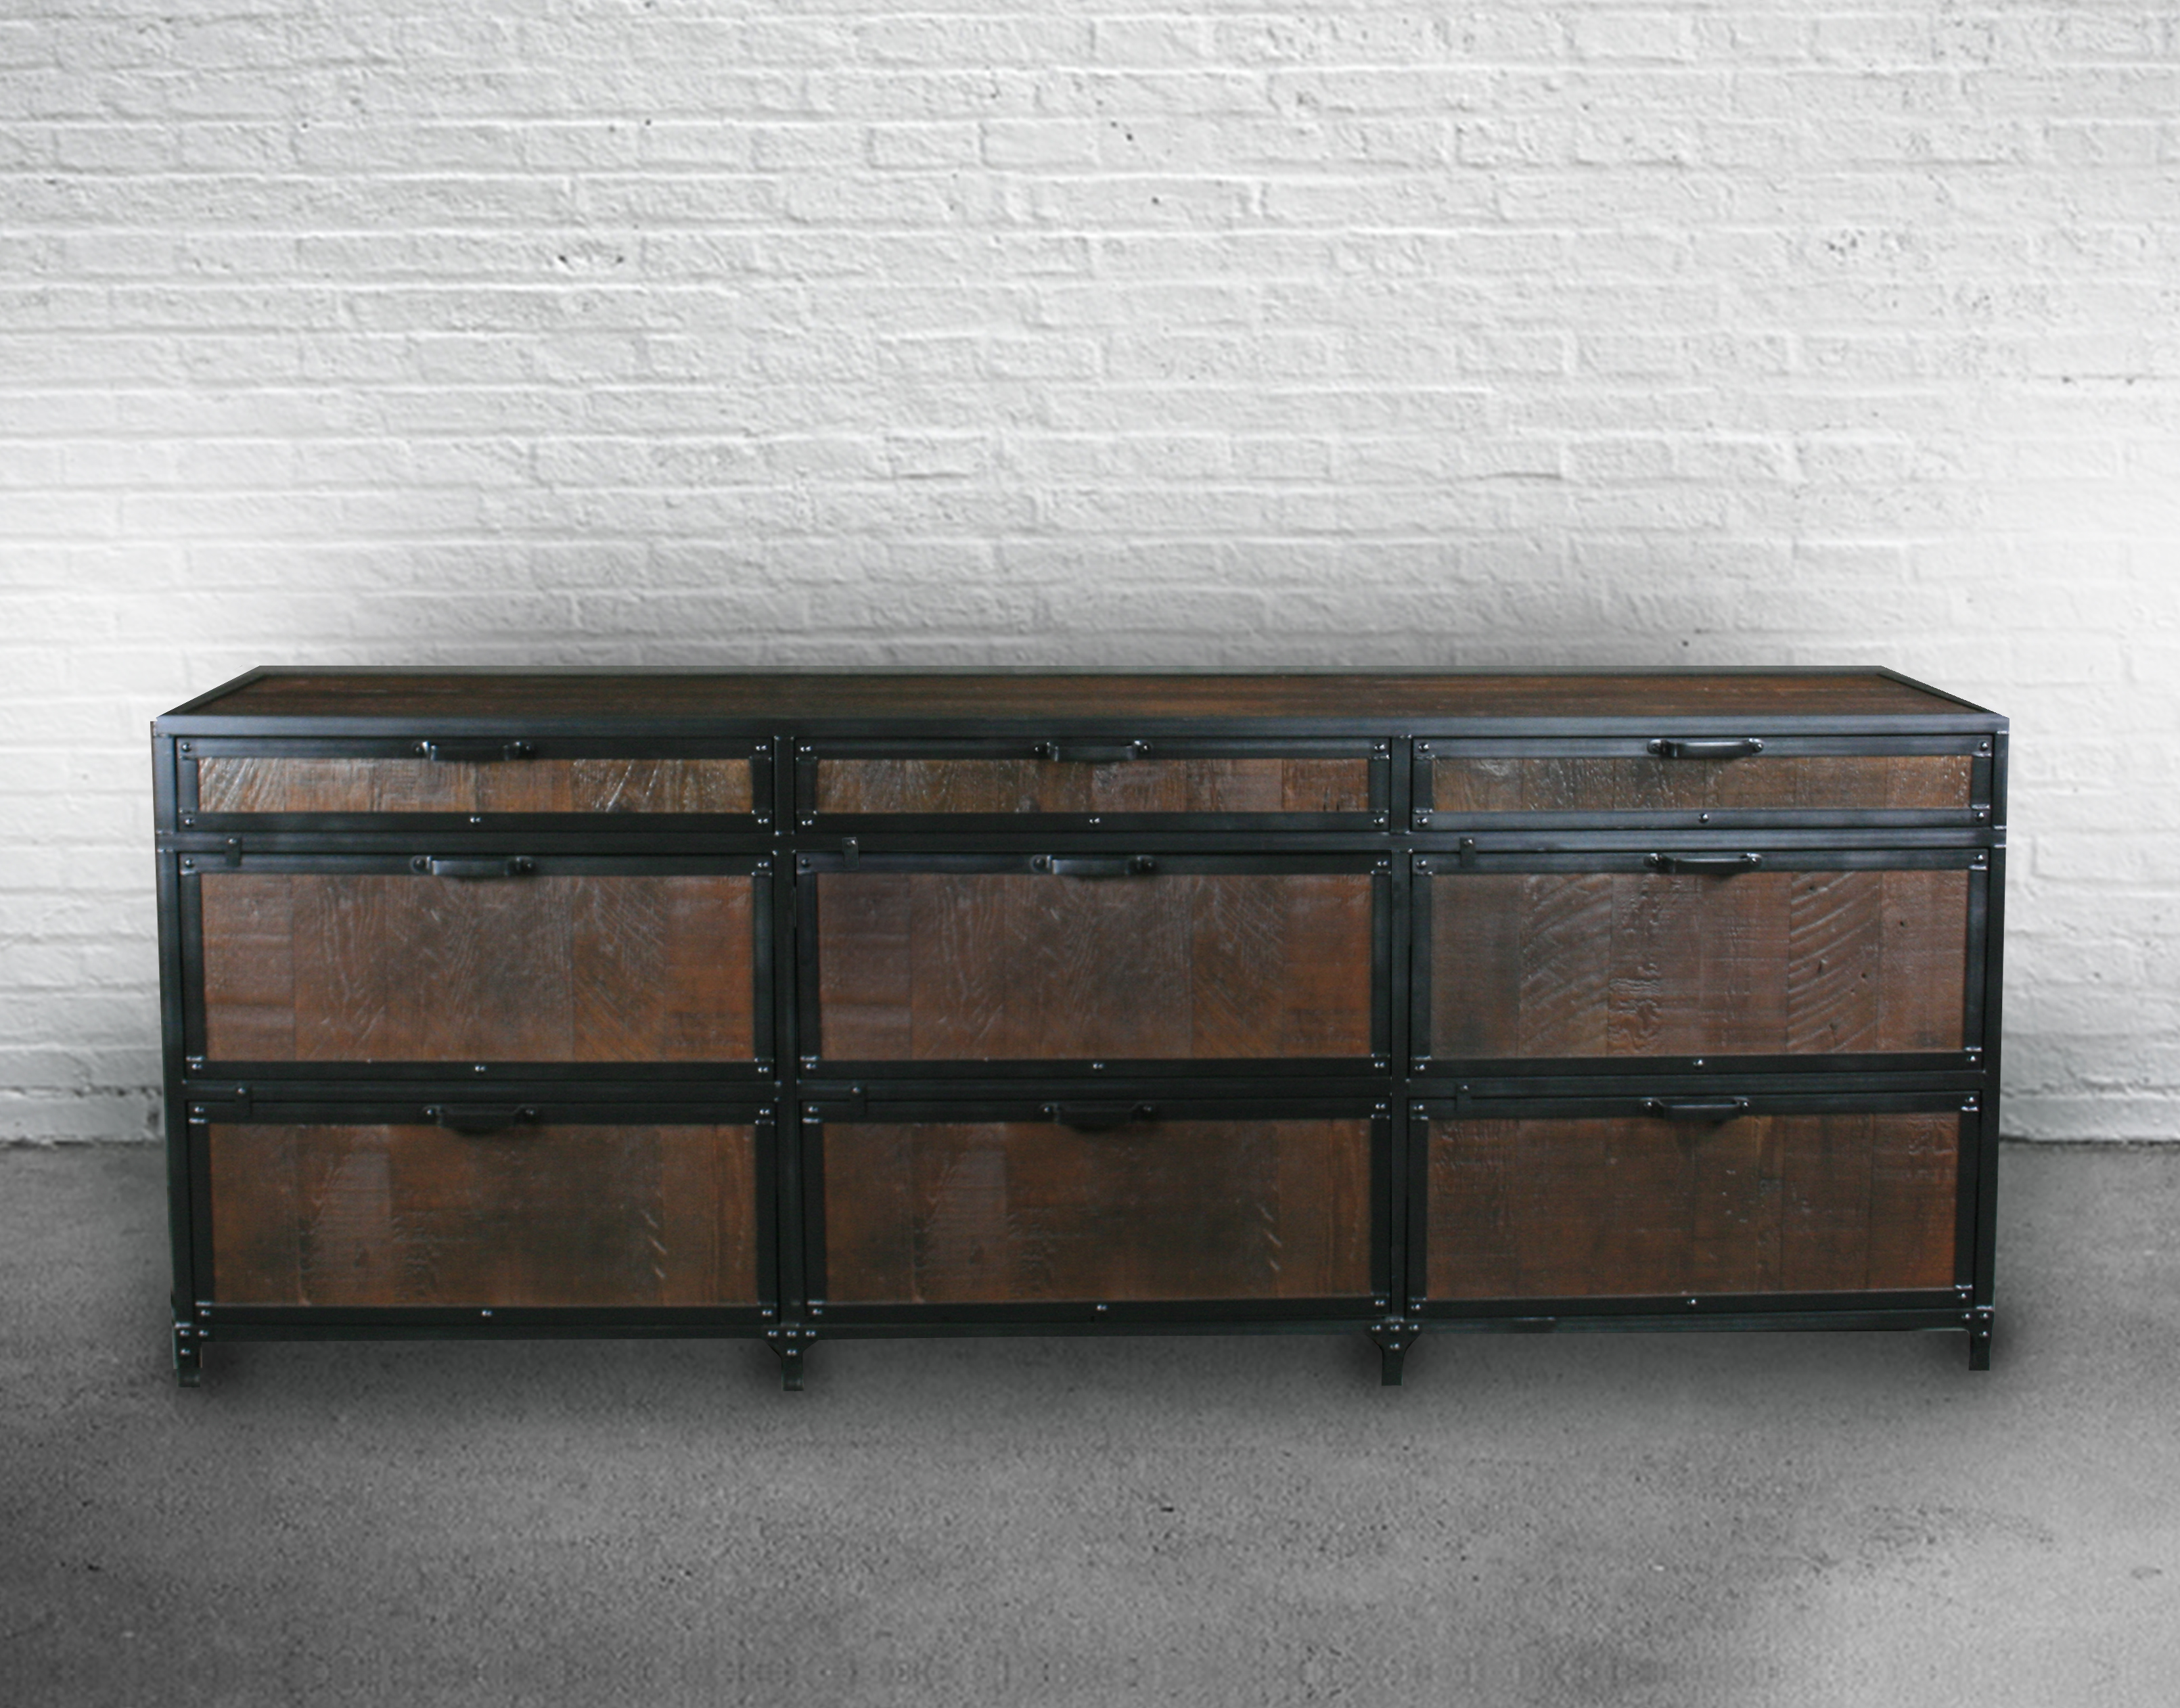 Vintage industrial dresser made from reclaimed wood.